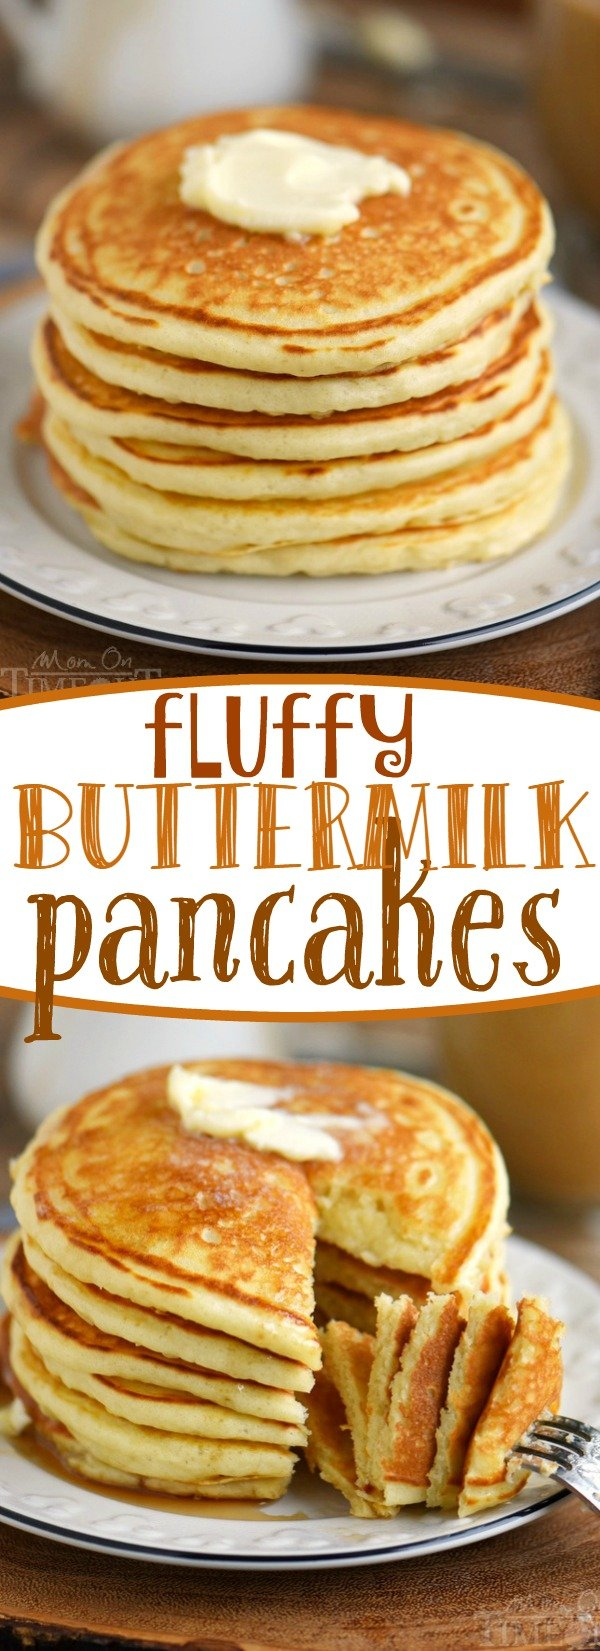 buttermilk-pancakes-recipe-collage